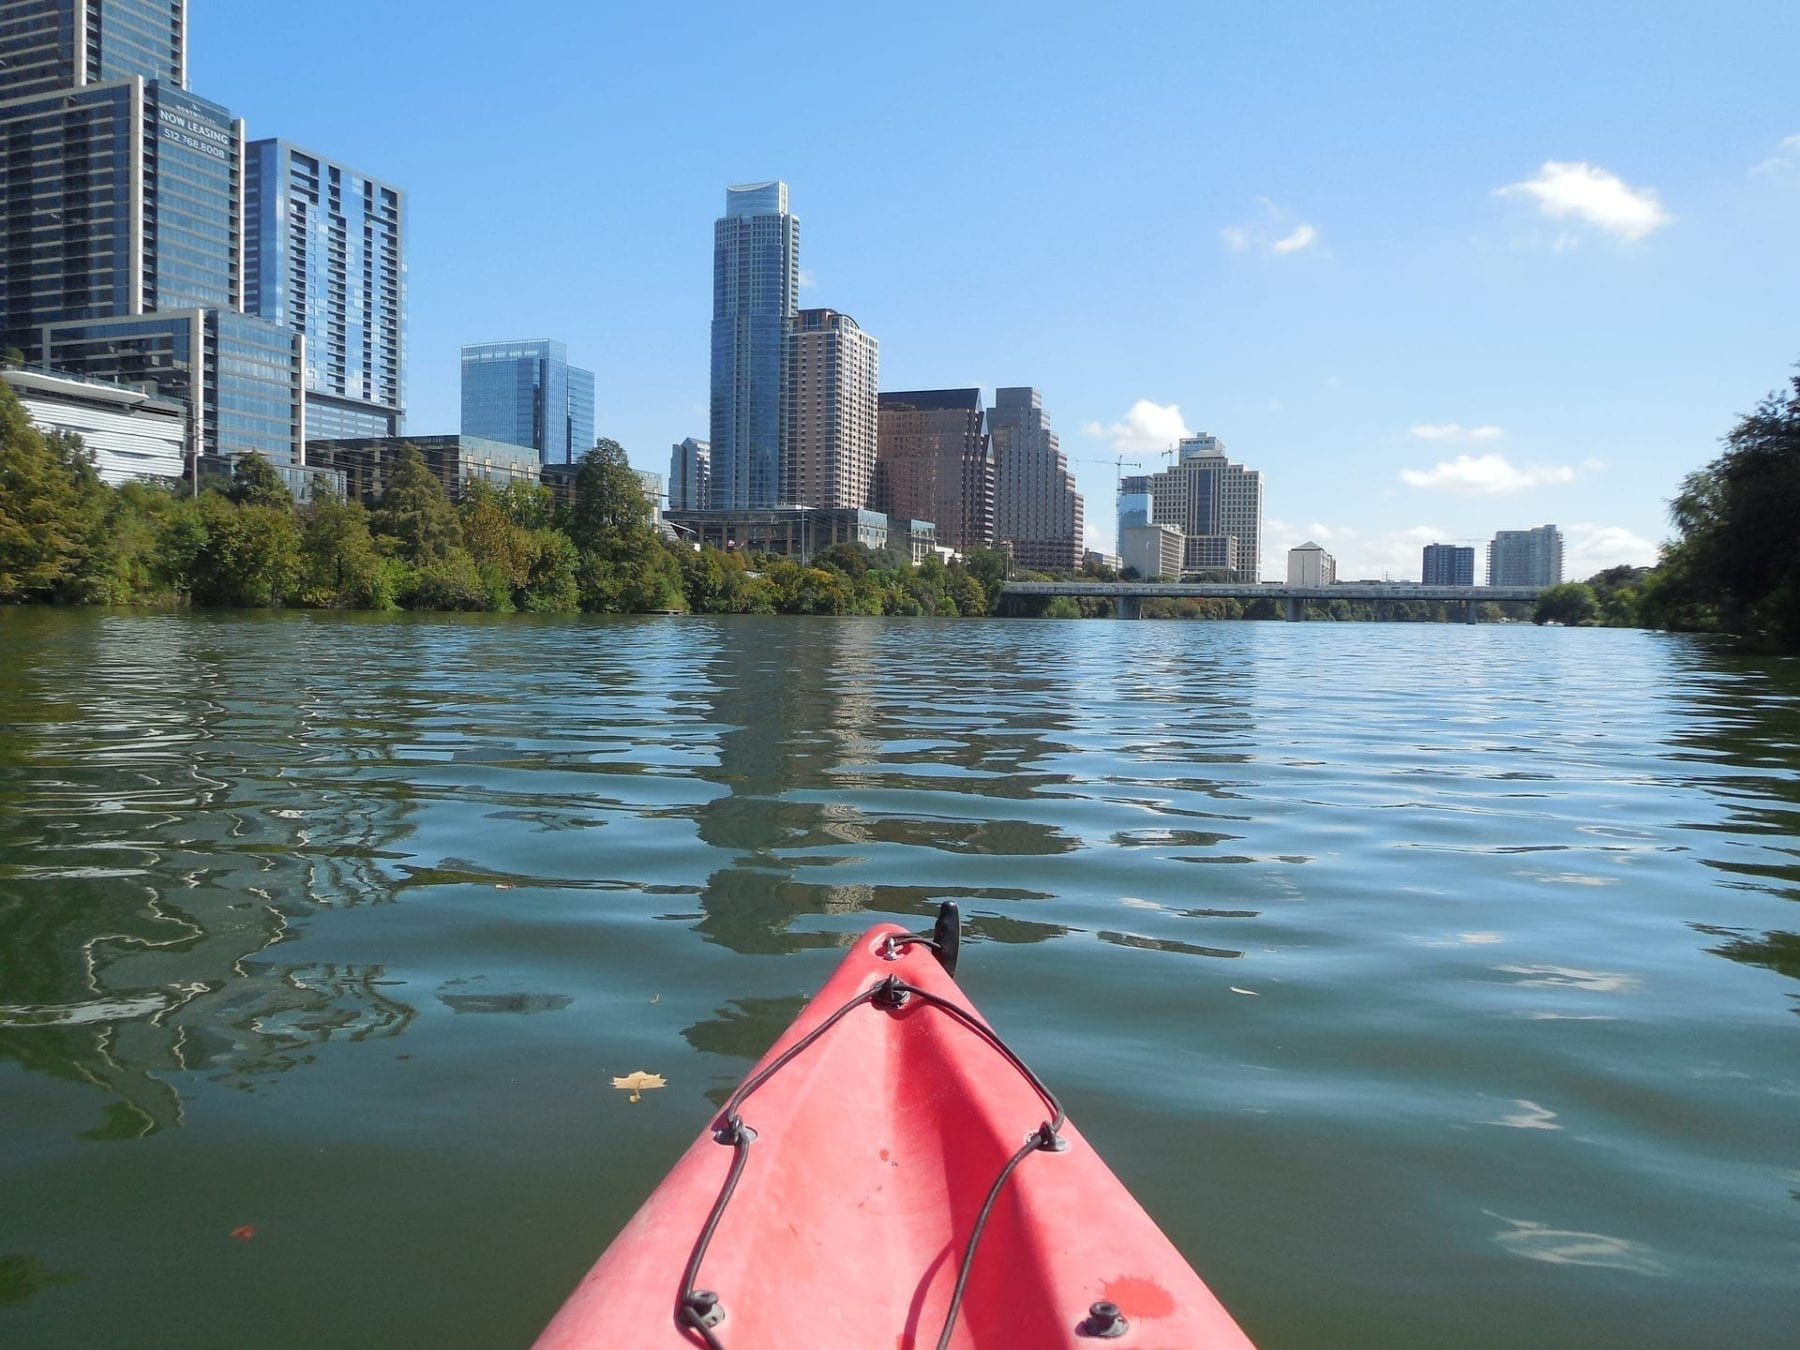 Kayaking in Austin, Tx